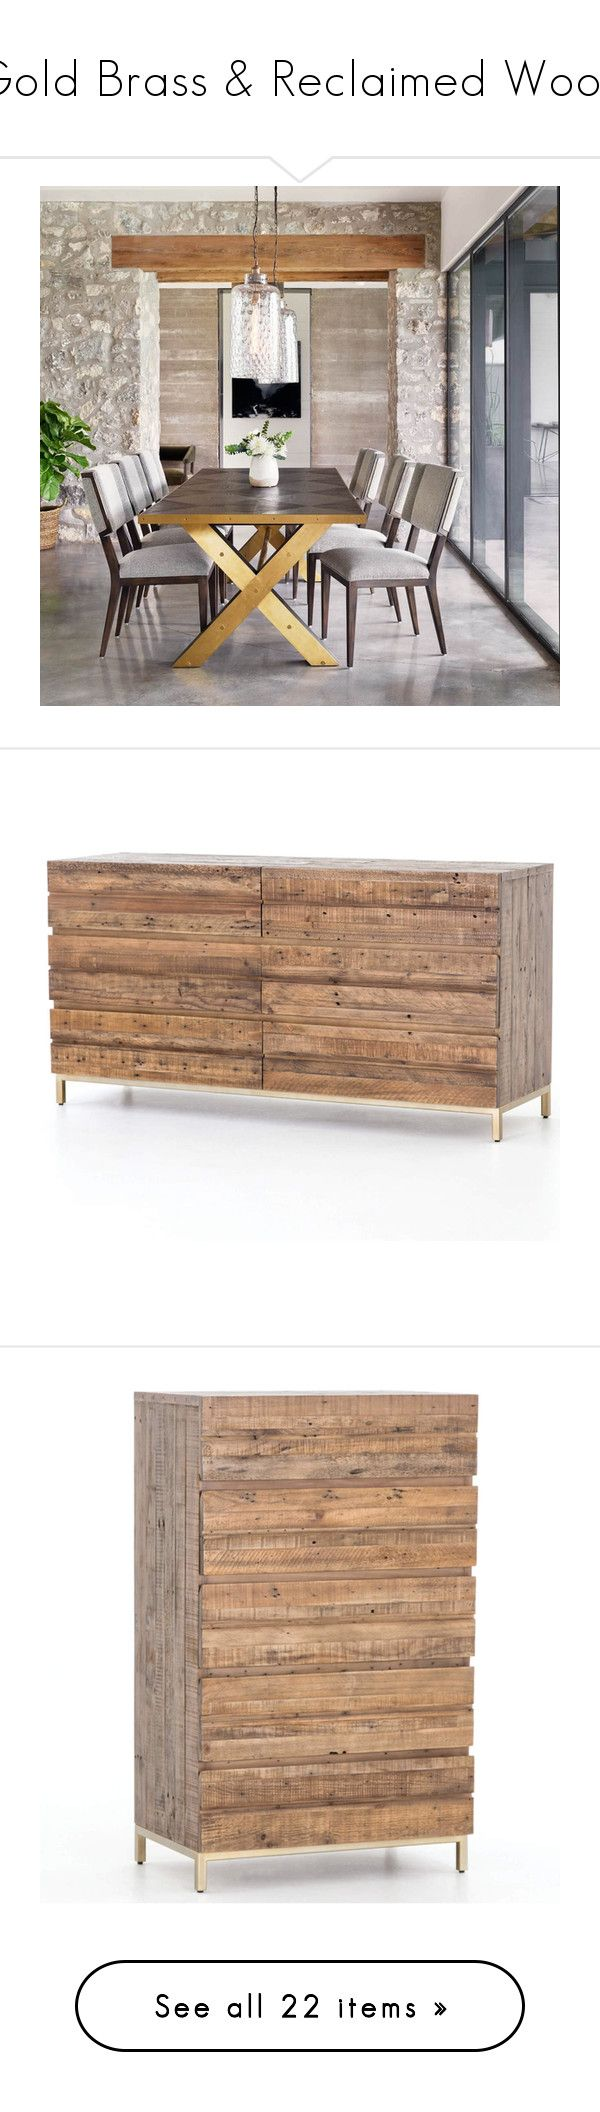 """""""Gold Brass & Reclaimed Wood"""" by zinhome ❤ liked on Polyvore featuring home, furniture, tables, dining tables, oak kitchen table, oakwood furniture, oak slab table, oak furniture, nailhead table and storage & shelves"""